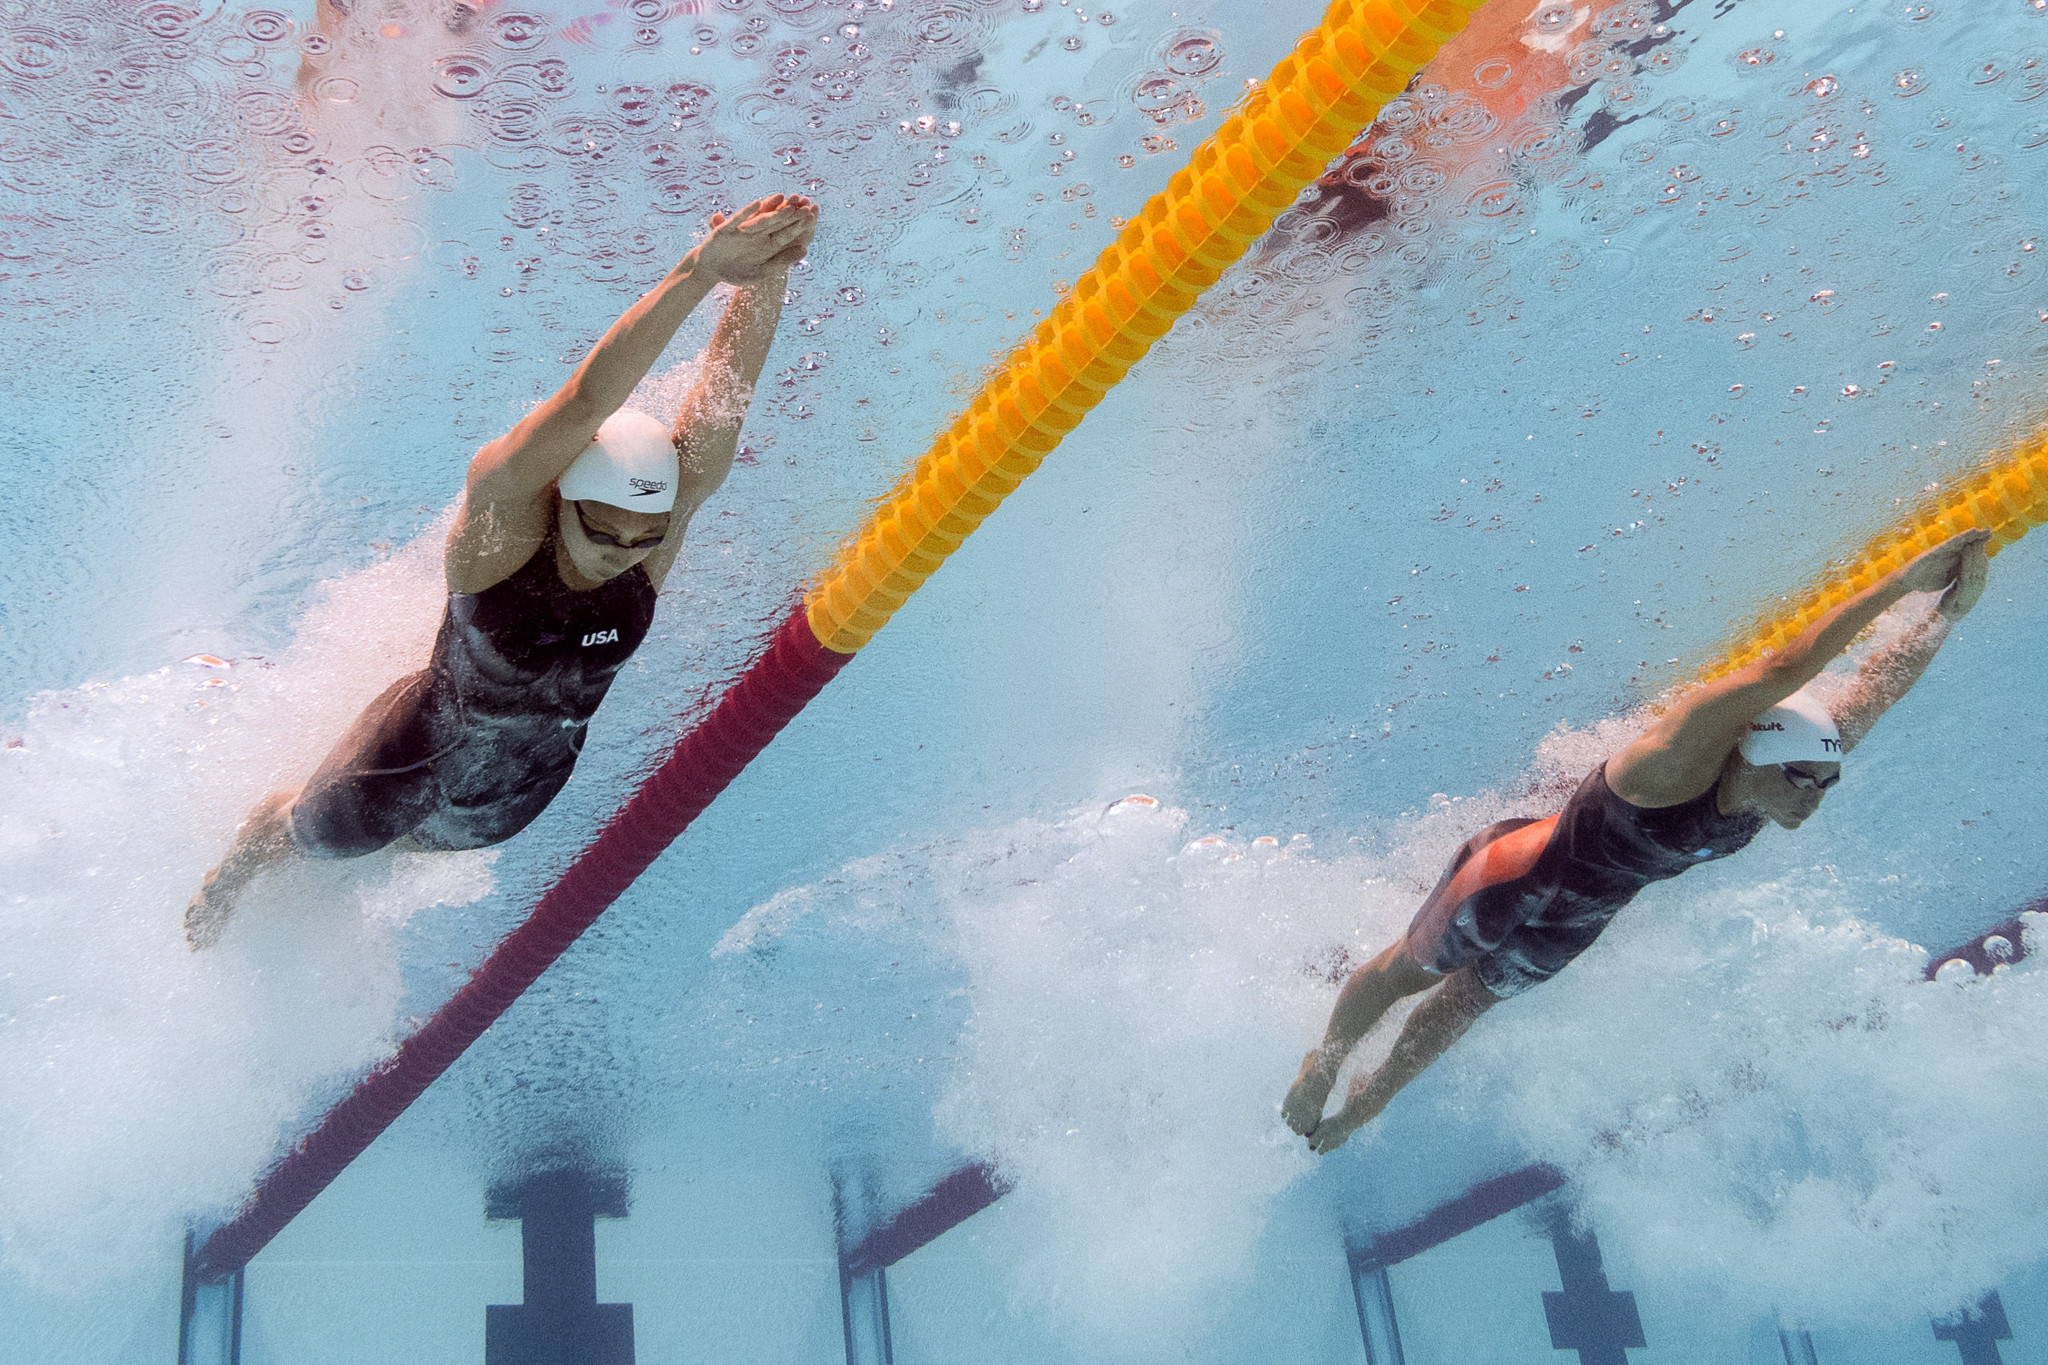 FINA approves video technology to assist rulings on stroke infractions